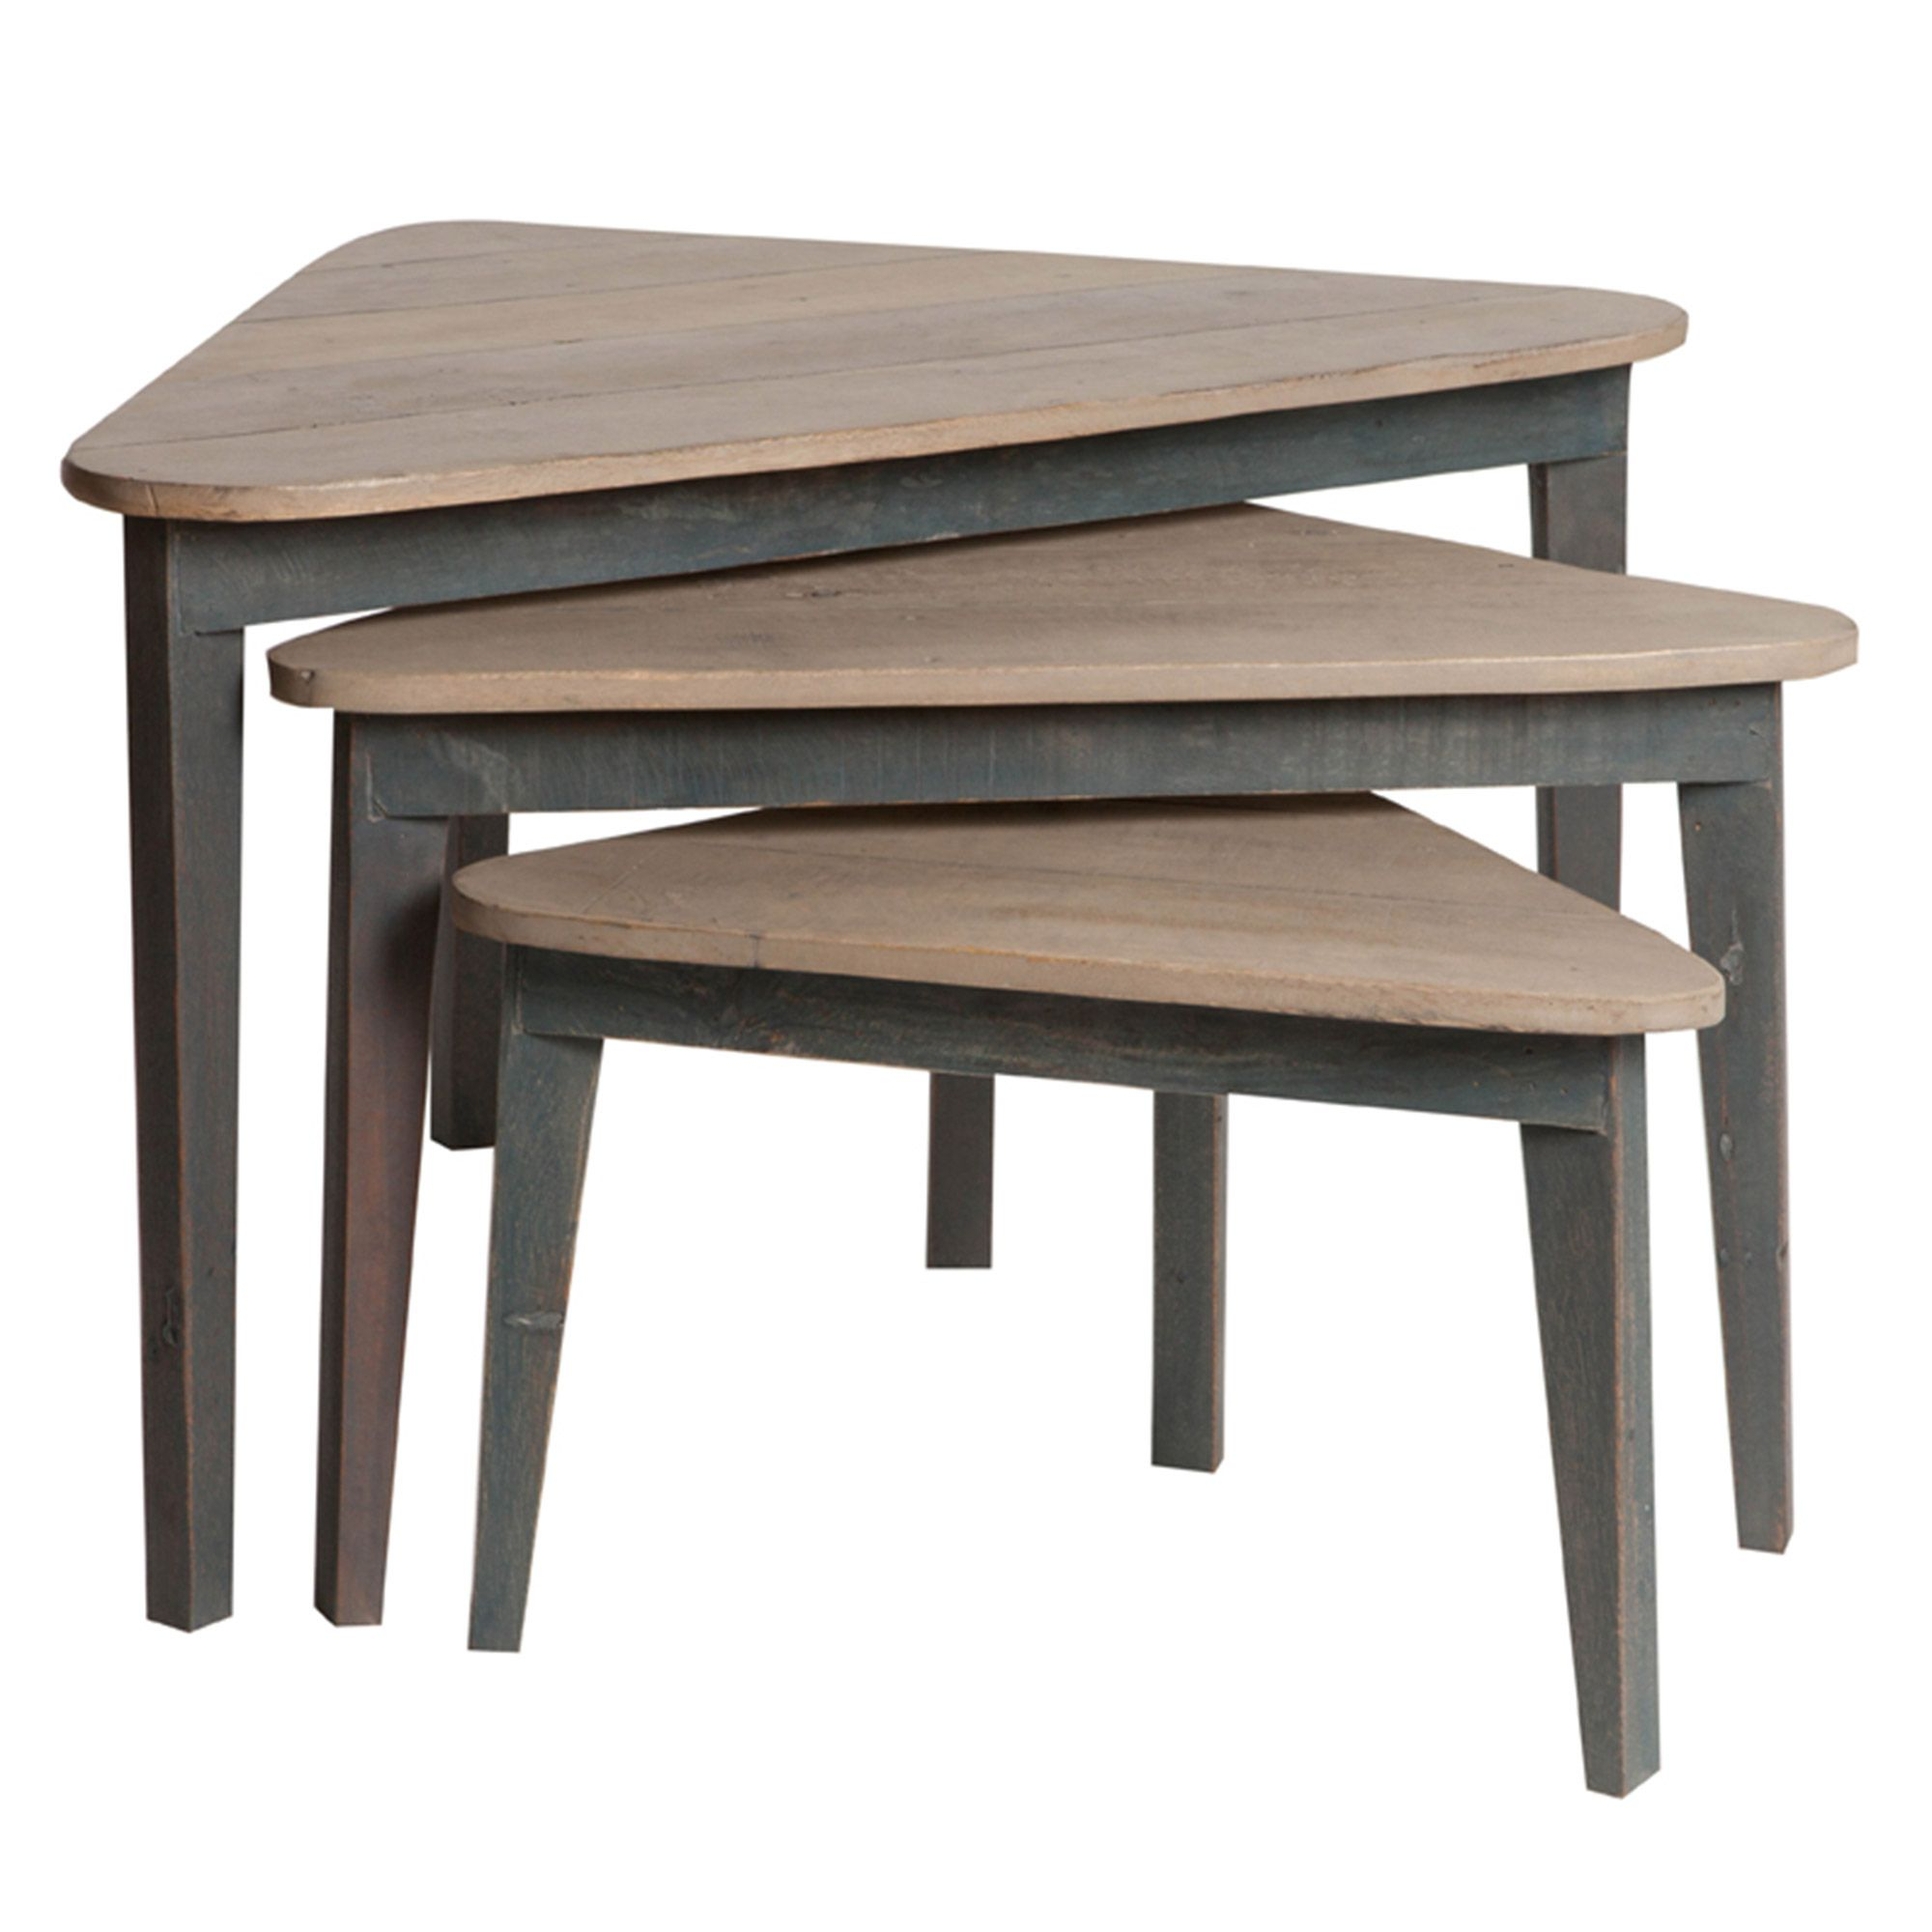 Tables gigognes triangulaires en bois sark port offert salon en 2019 tables gigognes - Table de salon gigogne ...